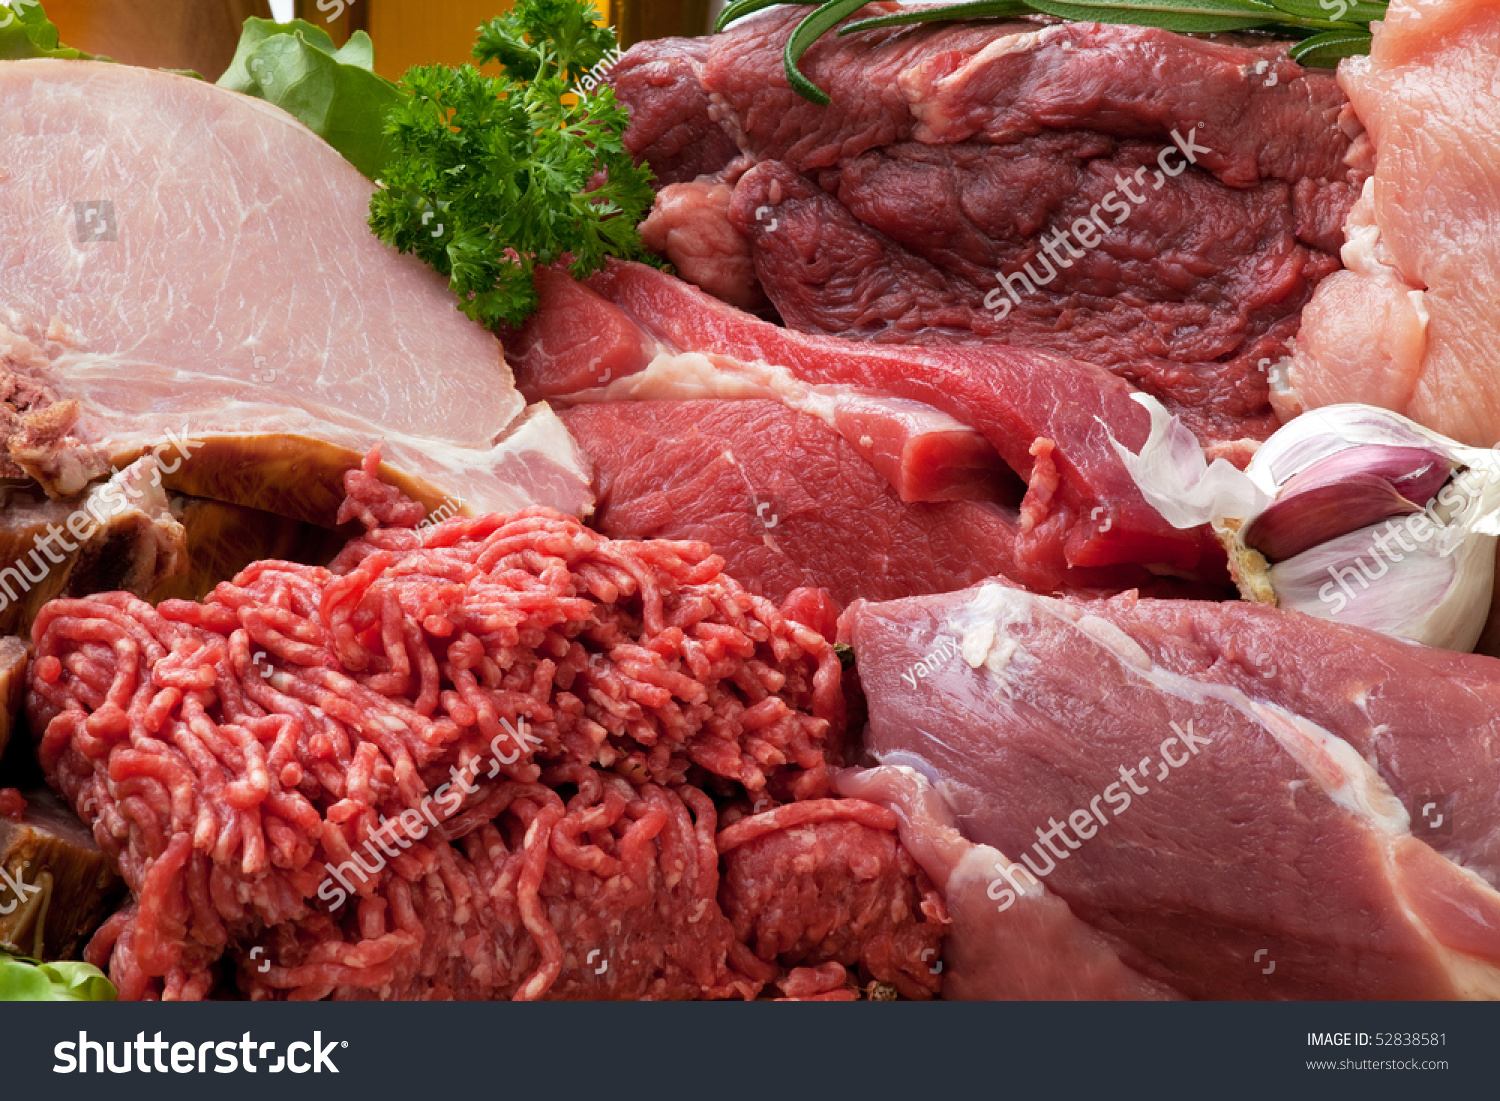 Fresh Raw Meat Background with Smoked Pork Chops, Beef Meat, Turkey ...